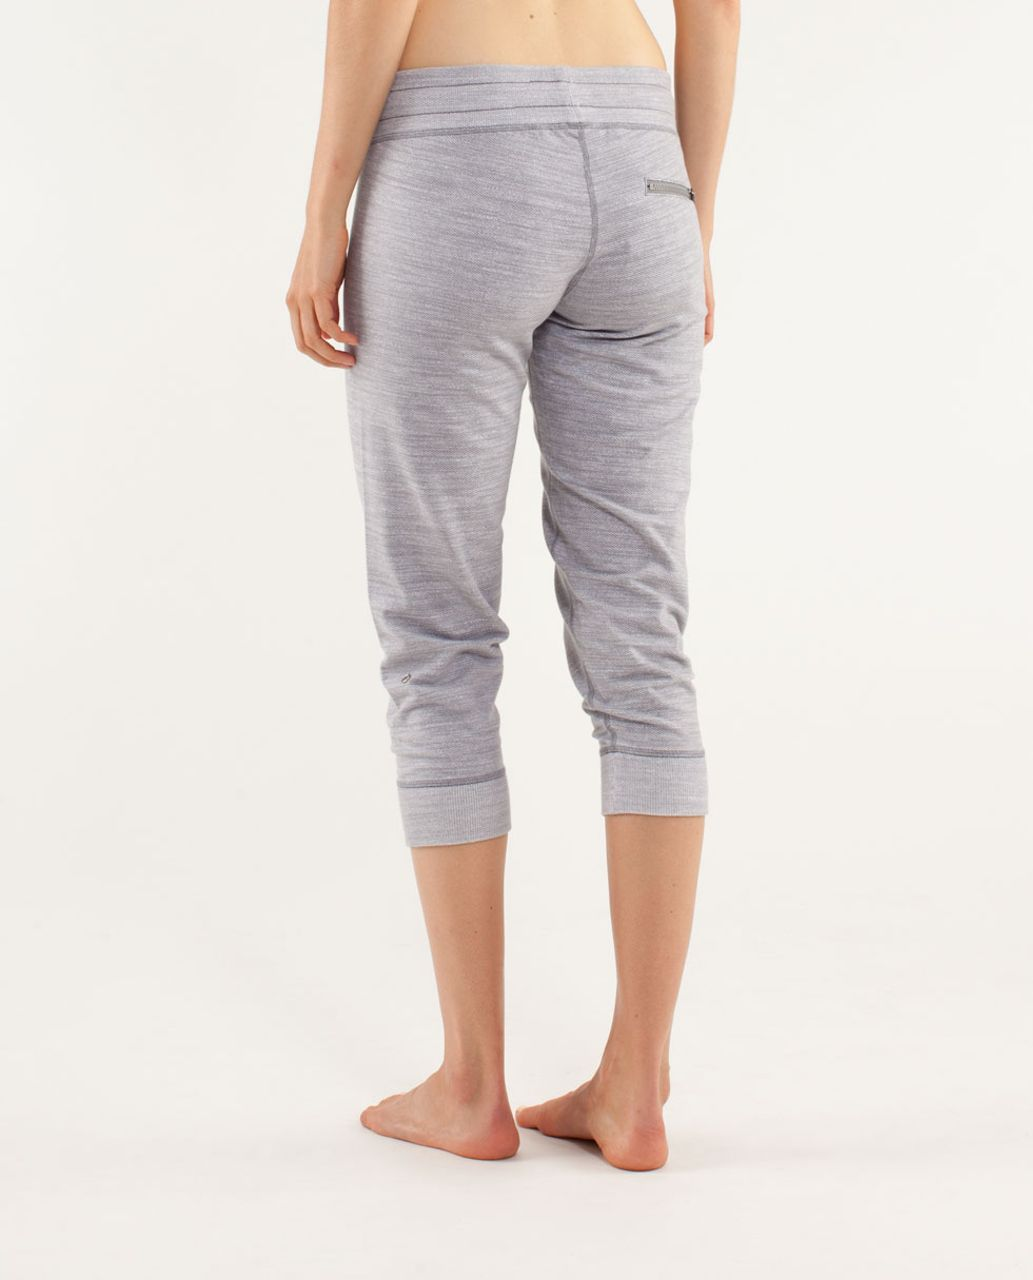 6d33c20ac8dd9 Lululemon Tea Lounge Crop - Commuter Denim White / Fossil - lulu fanatics